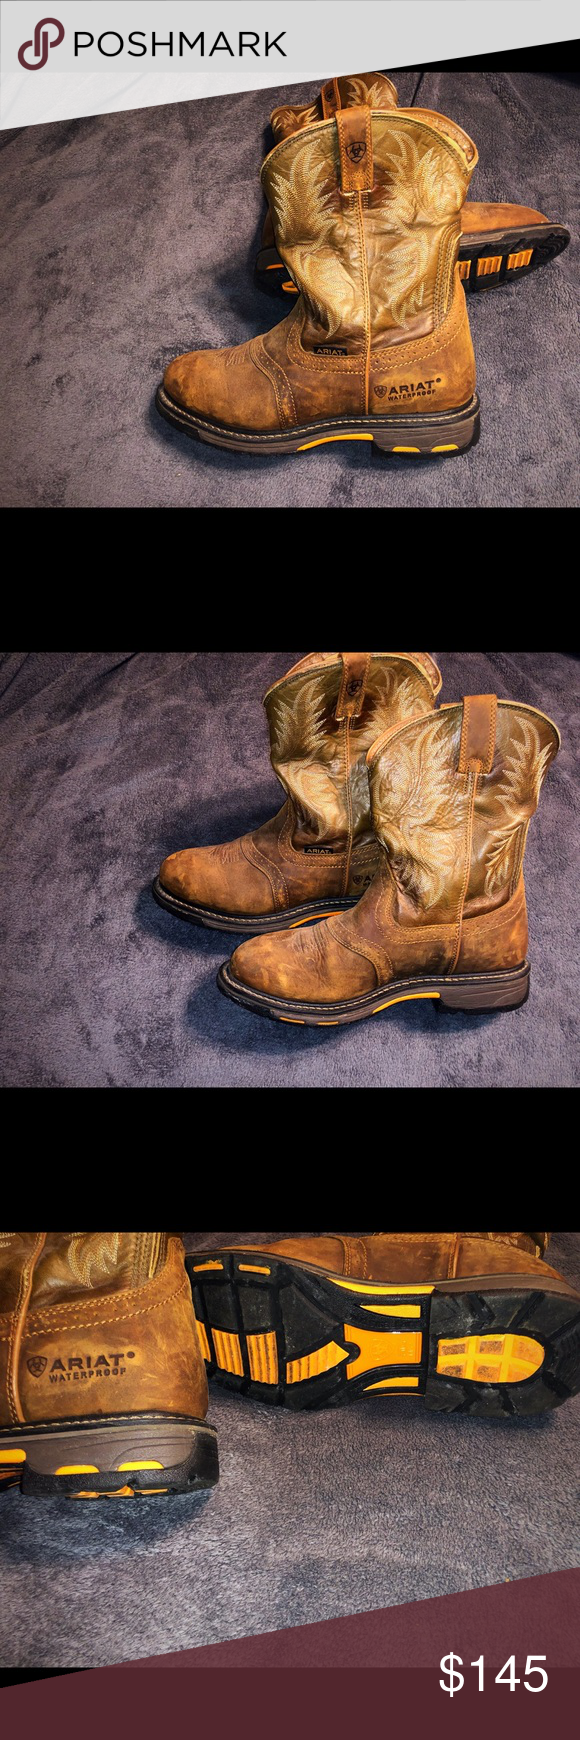 Mens Ariat Men S Workhog Wp Work Boots Size 11 Ee Men S Ariat Work Boots Worm Twice In Perfect Condition No Stains Or Scuff Work Boots Ariat Work Boots Boots